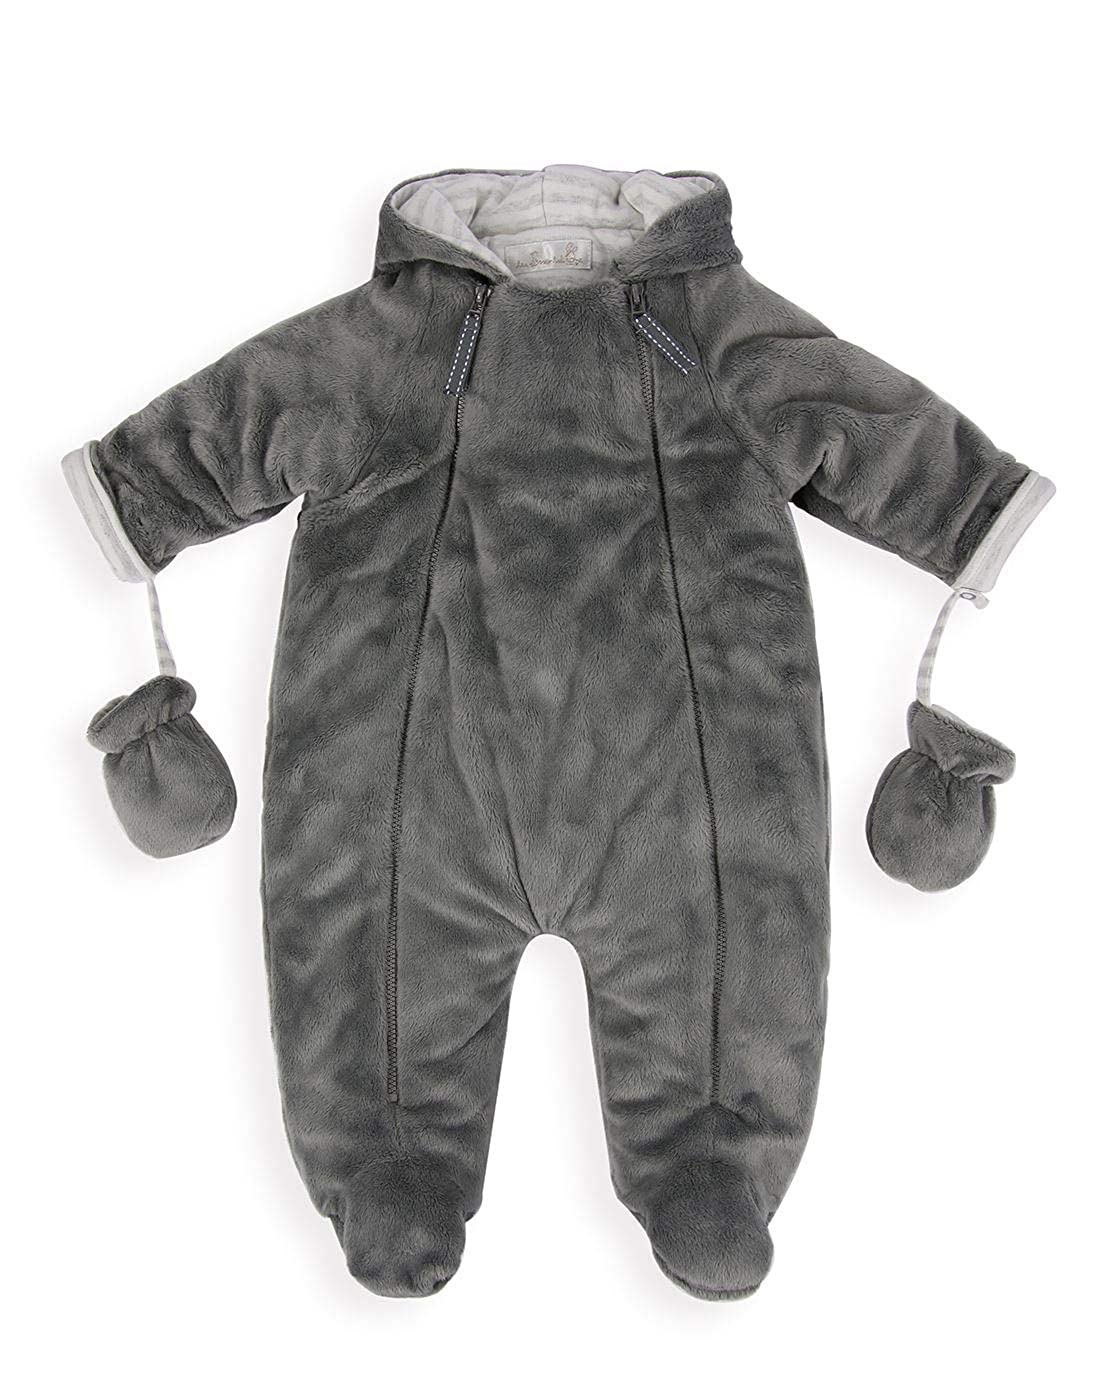 The Essential One - Baby Unisex Grey Pramsuit with Fur Lining - Grey - EO301